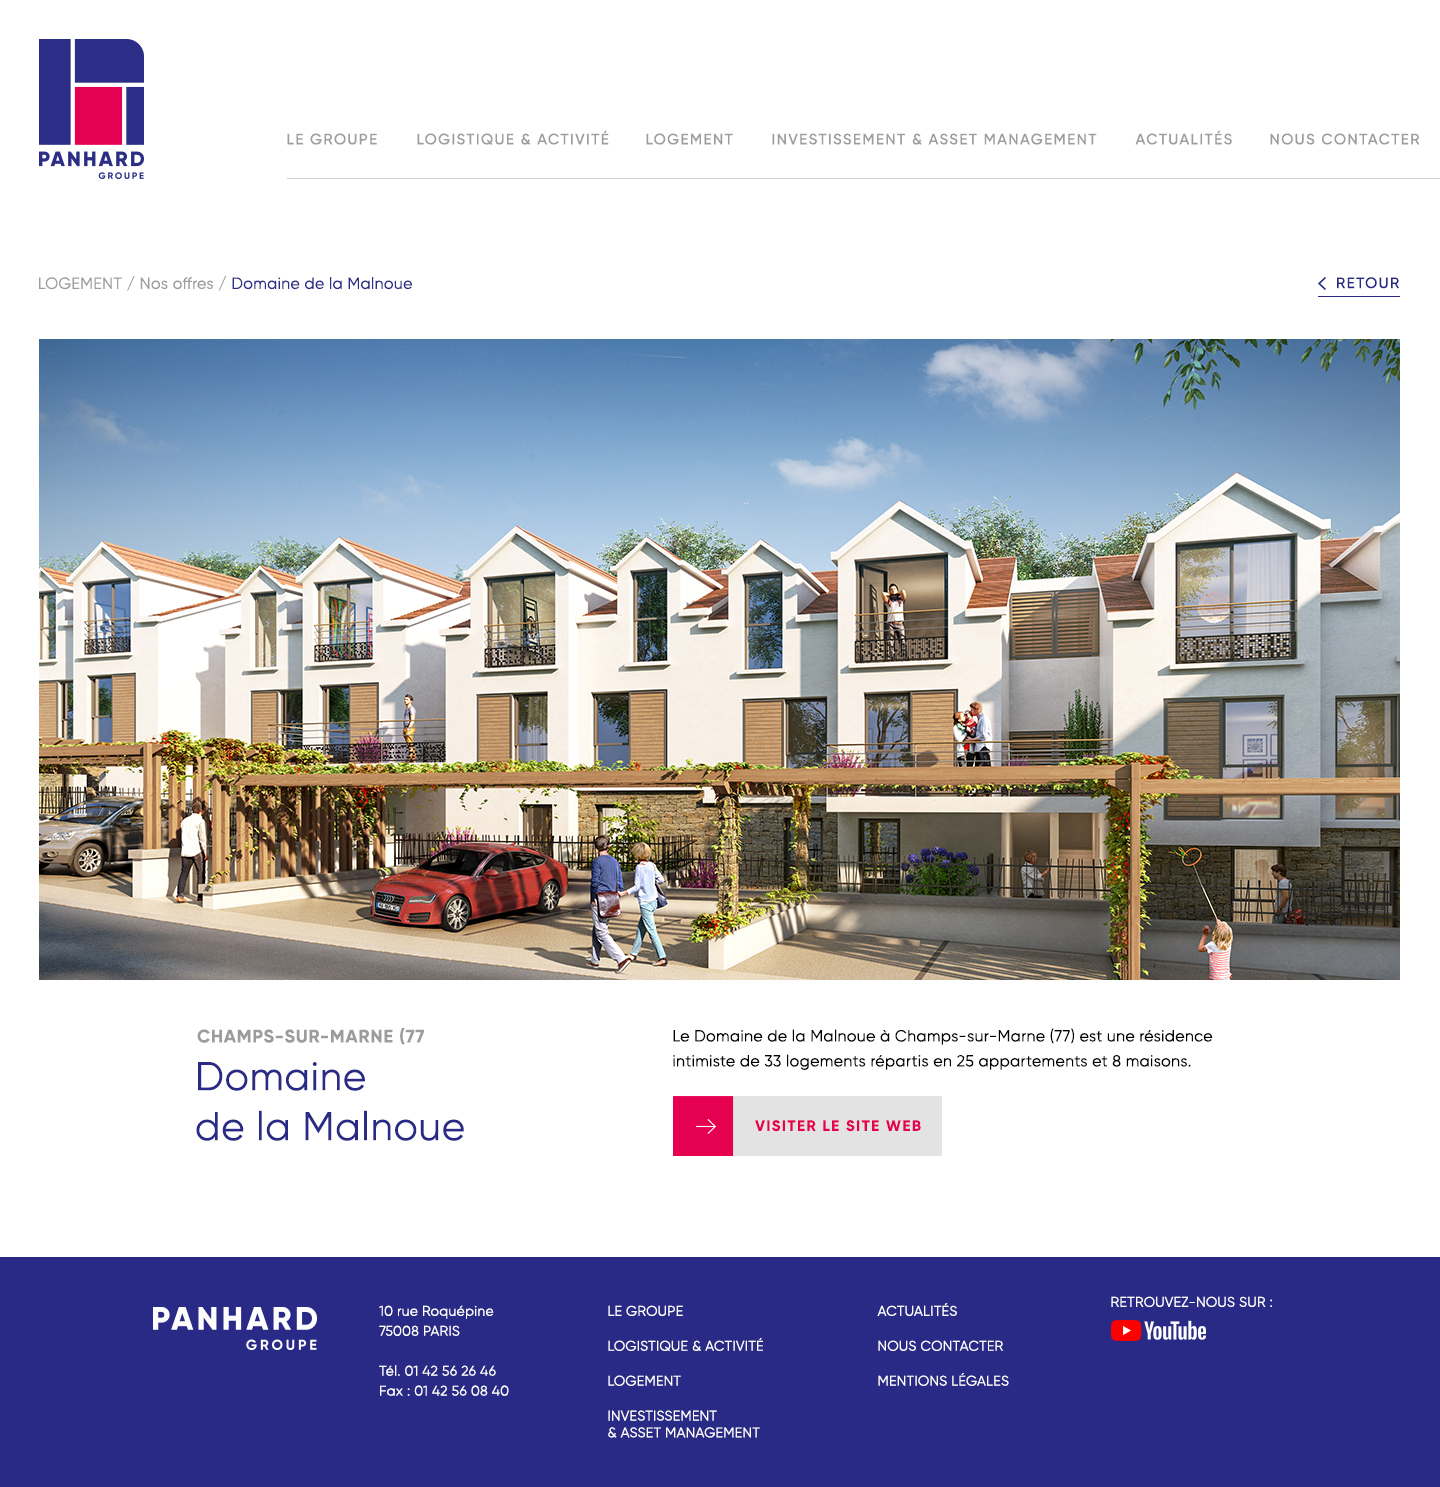 Panhard-Groupe_agathe_sauvageot_Website_Offre-Logement